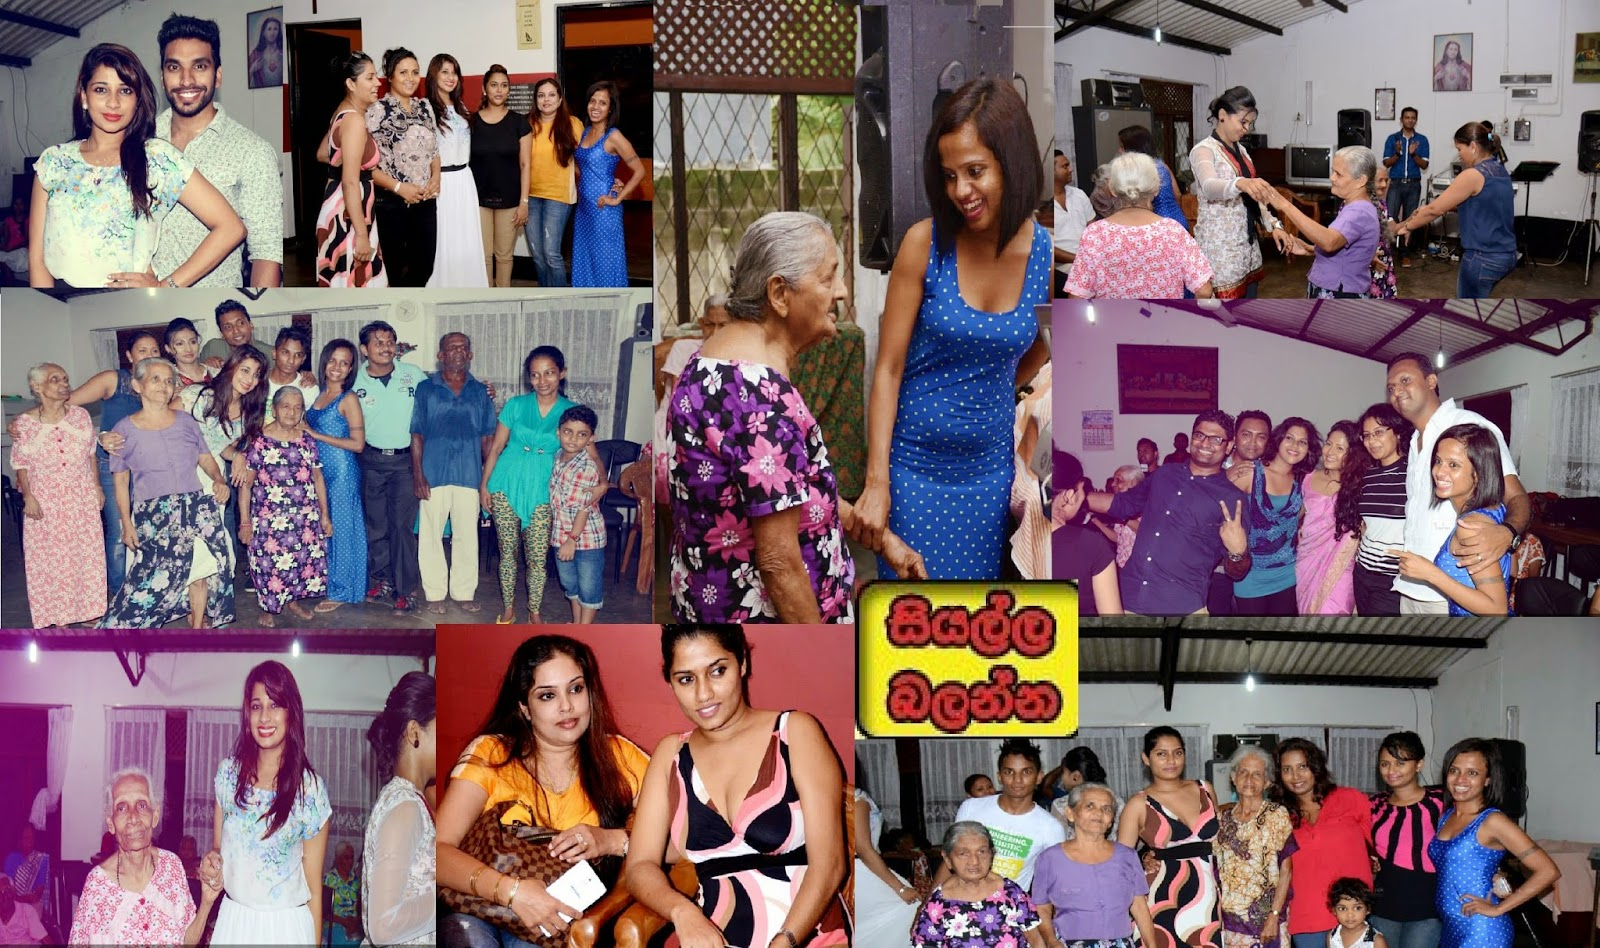 http://picture.gossiplankahotnews.com/2014/10/gayani-batzs-birthday-celebration-at.html